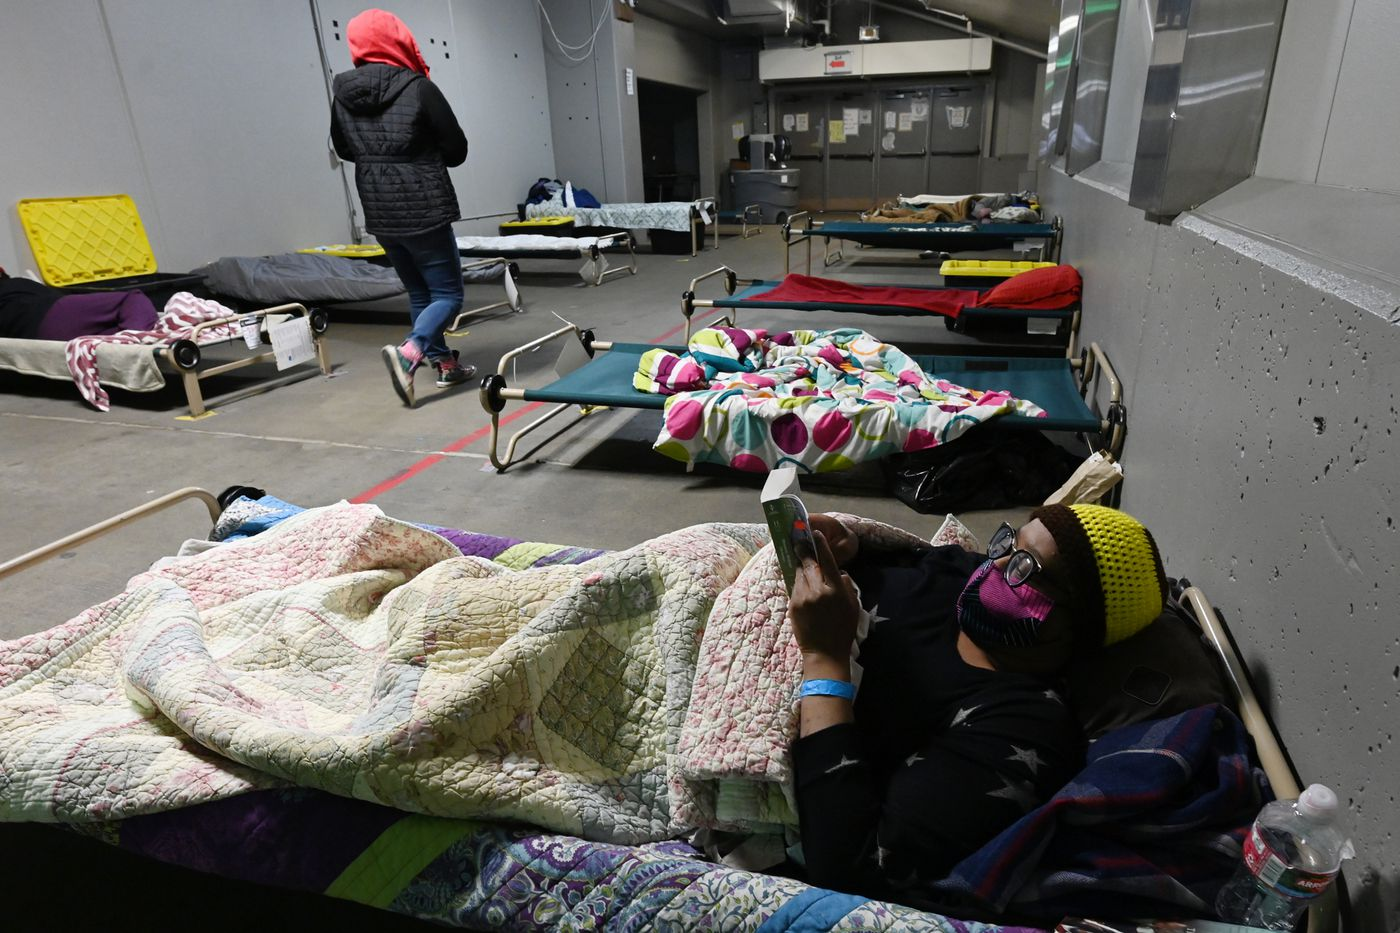 Roxanne Jnolewis reads a book in the Mass Emergency Shelter operated by Beans's Cafe in Sullivan Arena on Feb. 24, 2021. Jnolewis said at the time that she had been staying at the shelter since the end of last May and was on a waiting list for housing and other services. (Bill Roth / ADN)